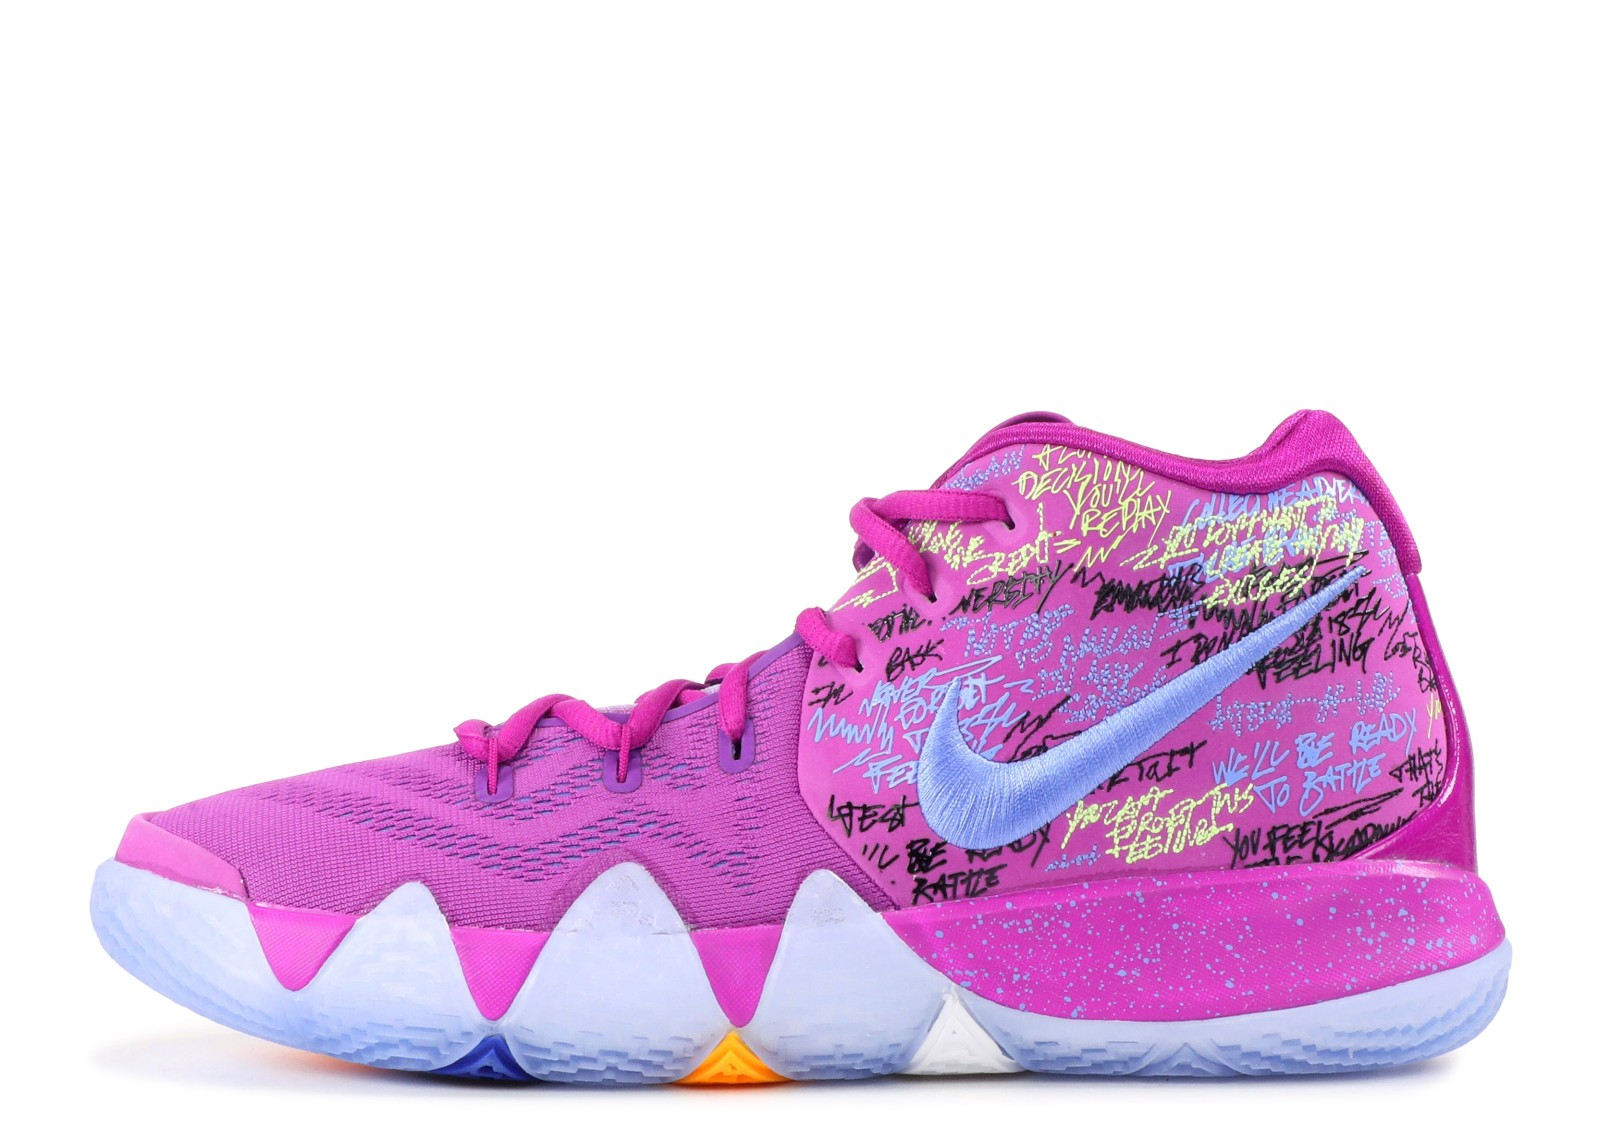 kyrie 4 green and purple